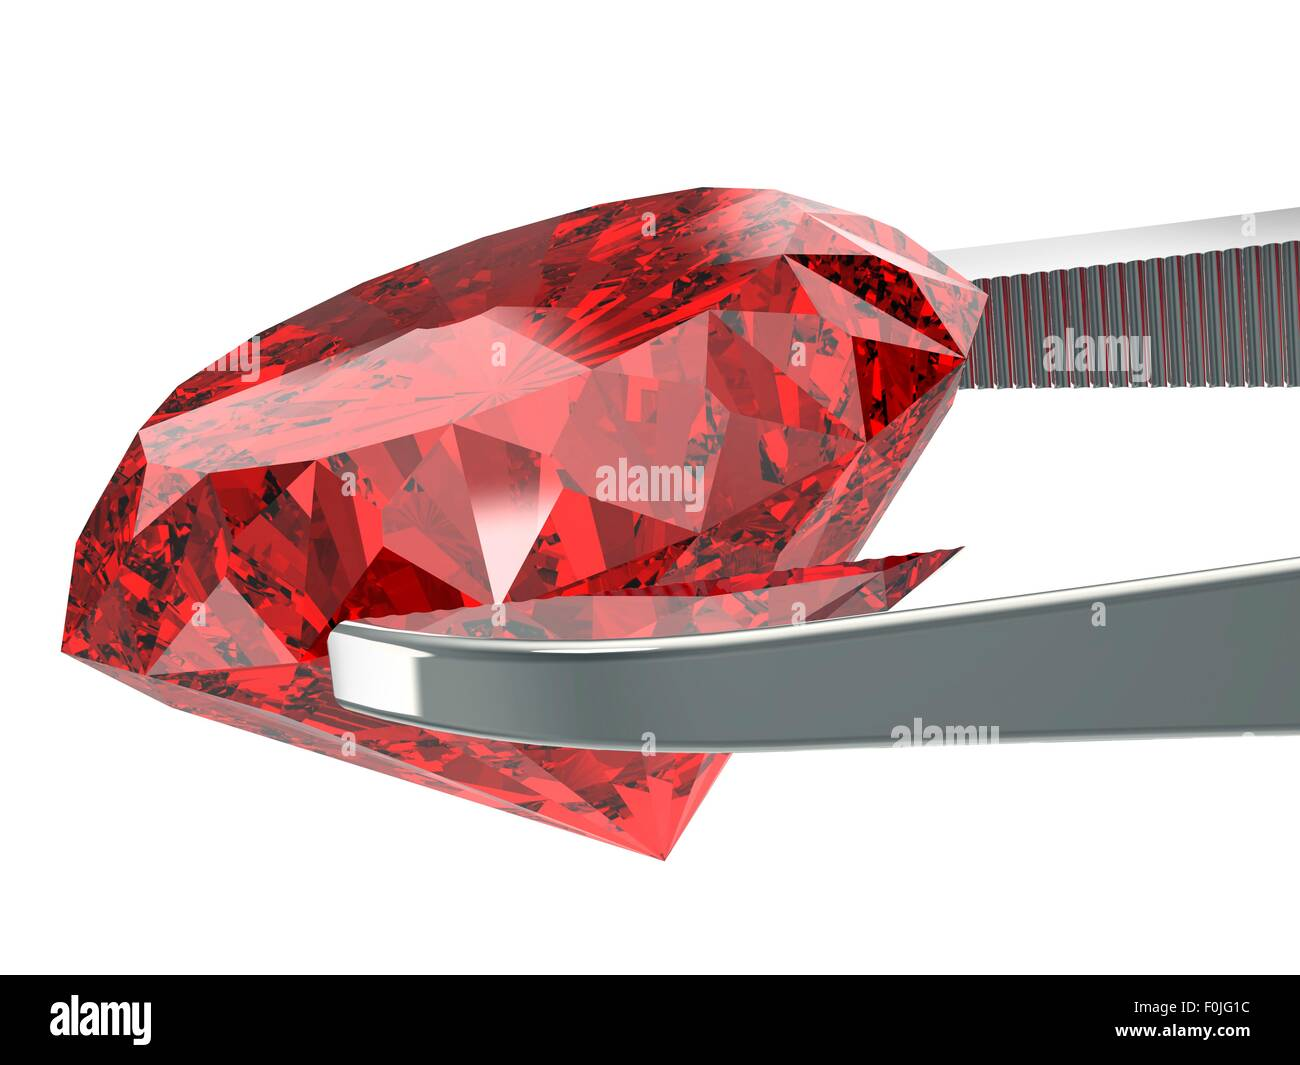 Diamond Tweezers Stock Photos & Diamond Tweezers Stock Images - Alamy